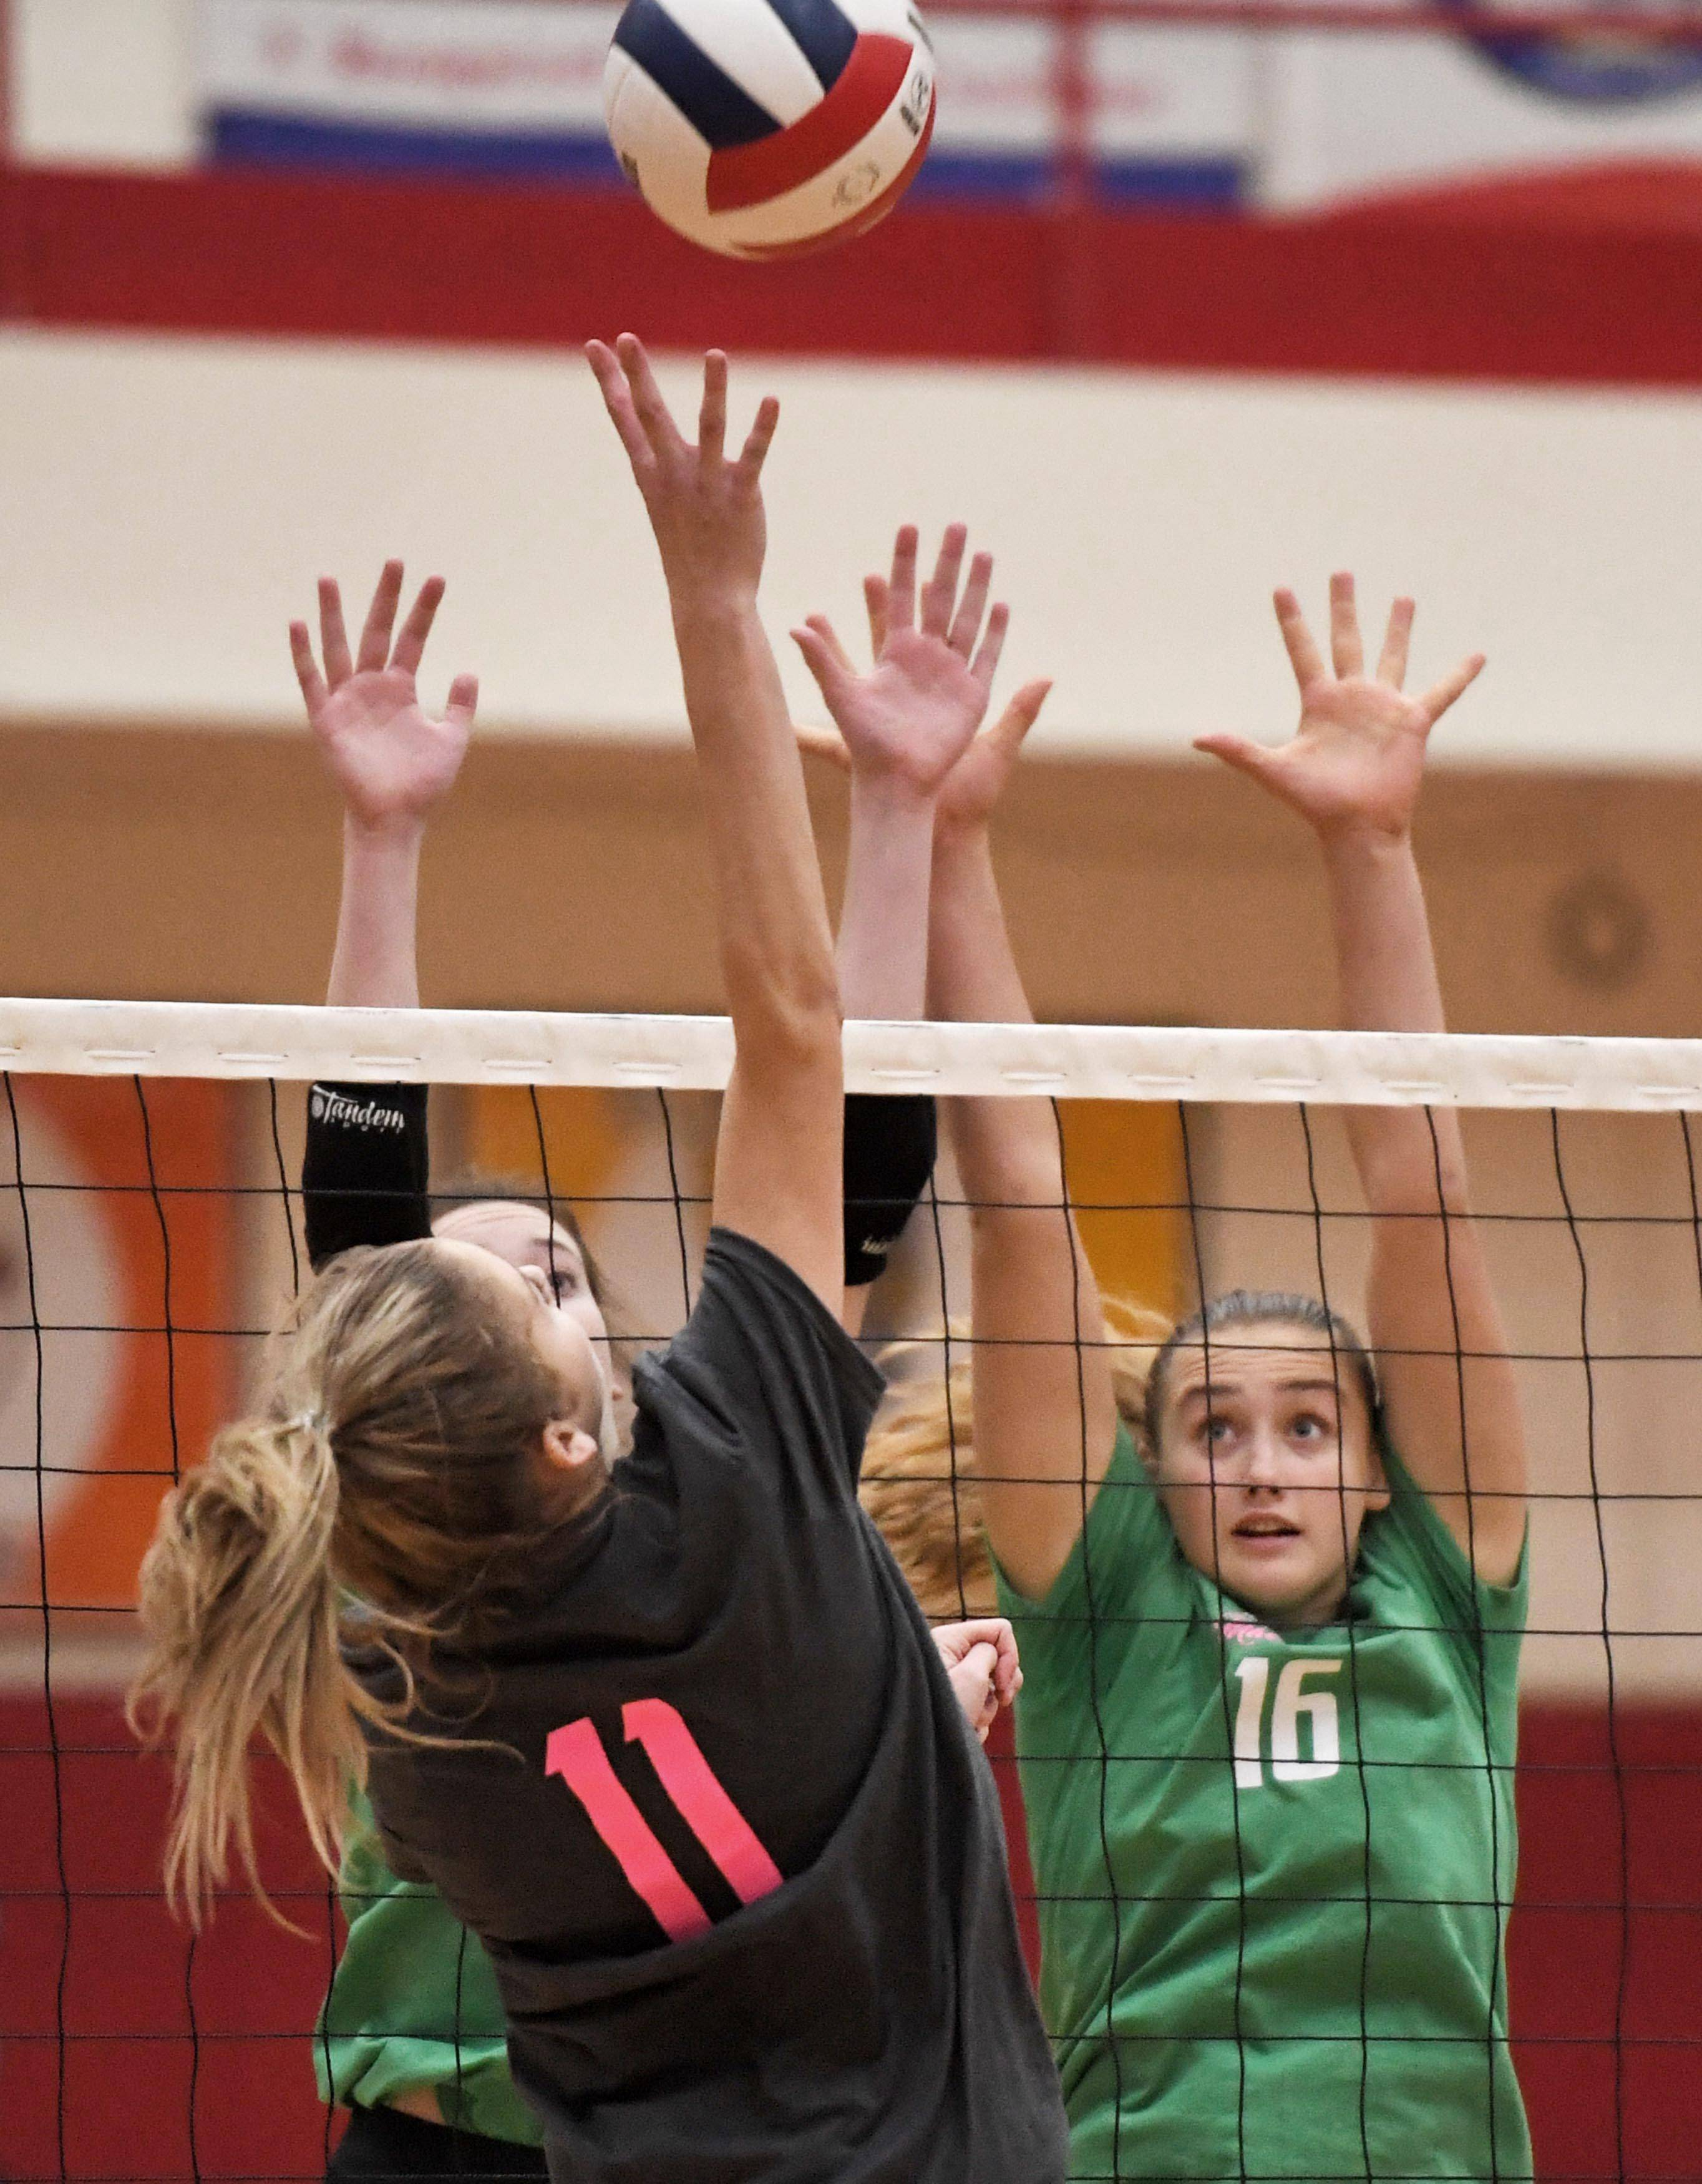 Palatine's Sydney Wiebe tries to get a shot over Fremd's Rylen Reid and Claudia Wala Thursday in a girls volleyball match at Palatine High School.